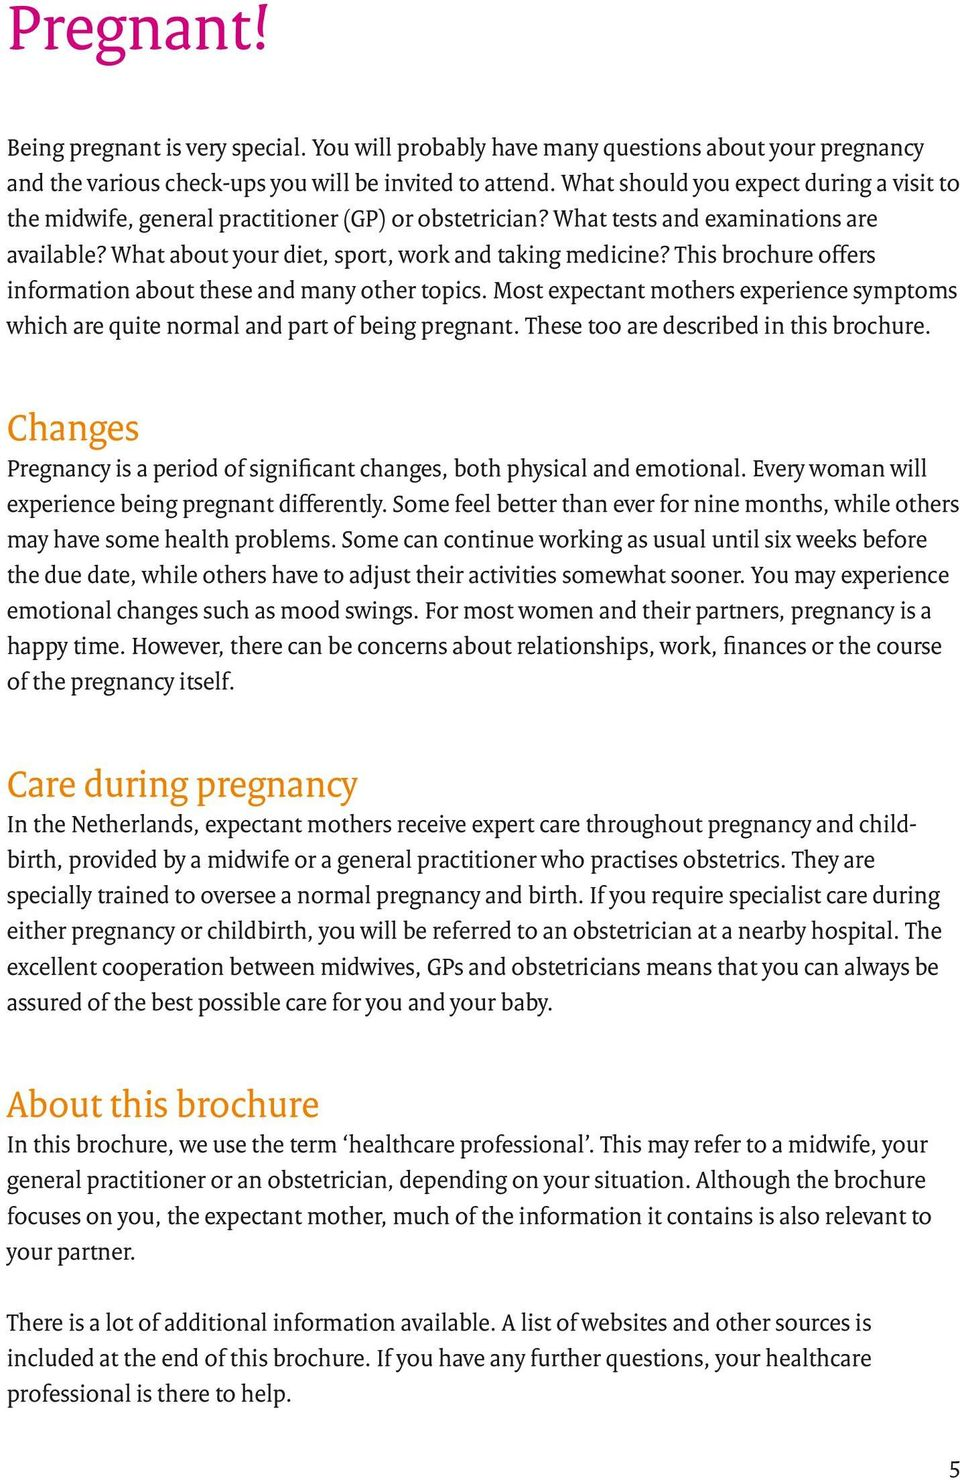 This brochure offers information about these and many other topics. Most expectant mothers experience symptoms which are quite normal and part of being pregnant.